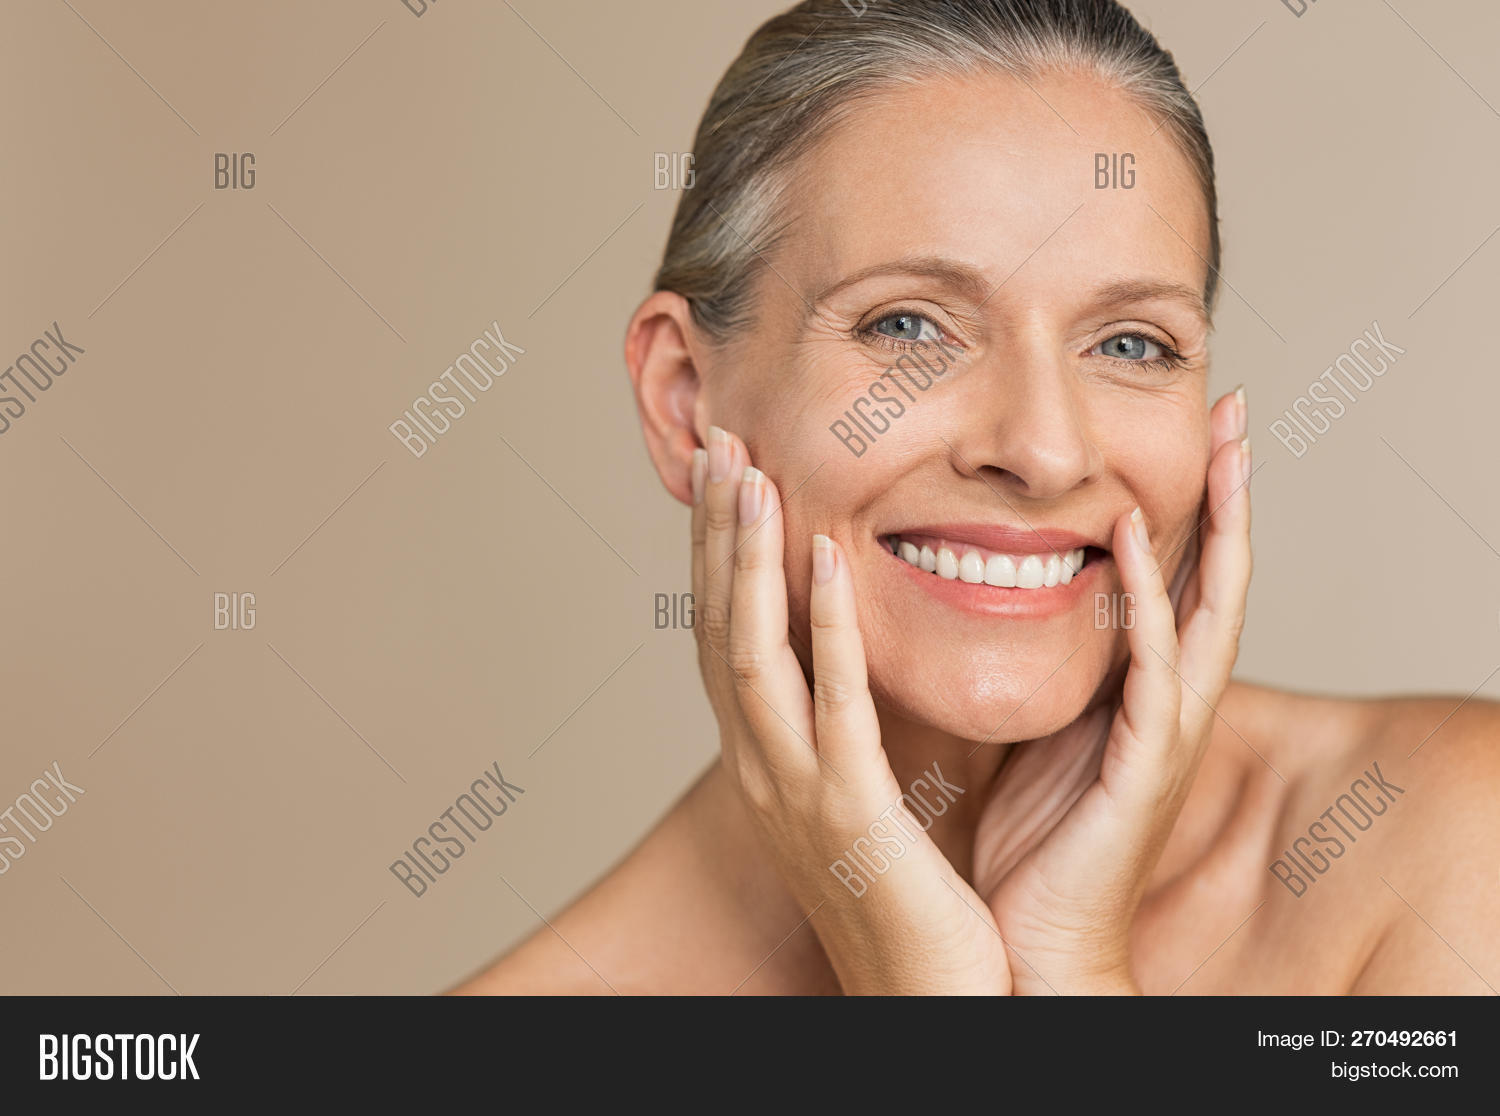 40s,50s,age,aged,aging,aging process,aging skin,anti-aging,attractive,background,beautiful,beauty,care,carefree,complexion,copy space,dental,face,grey,hand,happy,health,healthcare,healthy,isolated,looking,looking at camera,mature,mid adult woman,middle,middle aged woman,portrait,process,senior,skin,skin care,skincare,smile,softness,spa,studio,teeth,toothy,toothy smile,treatment,wellbeing,wellness,white,whitening,woman